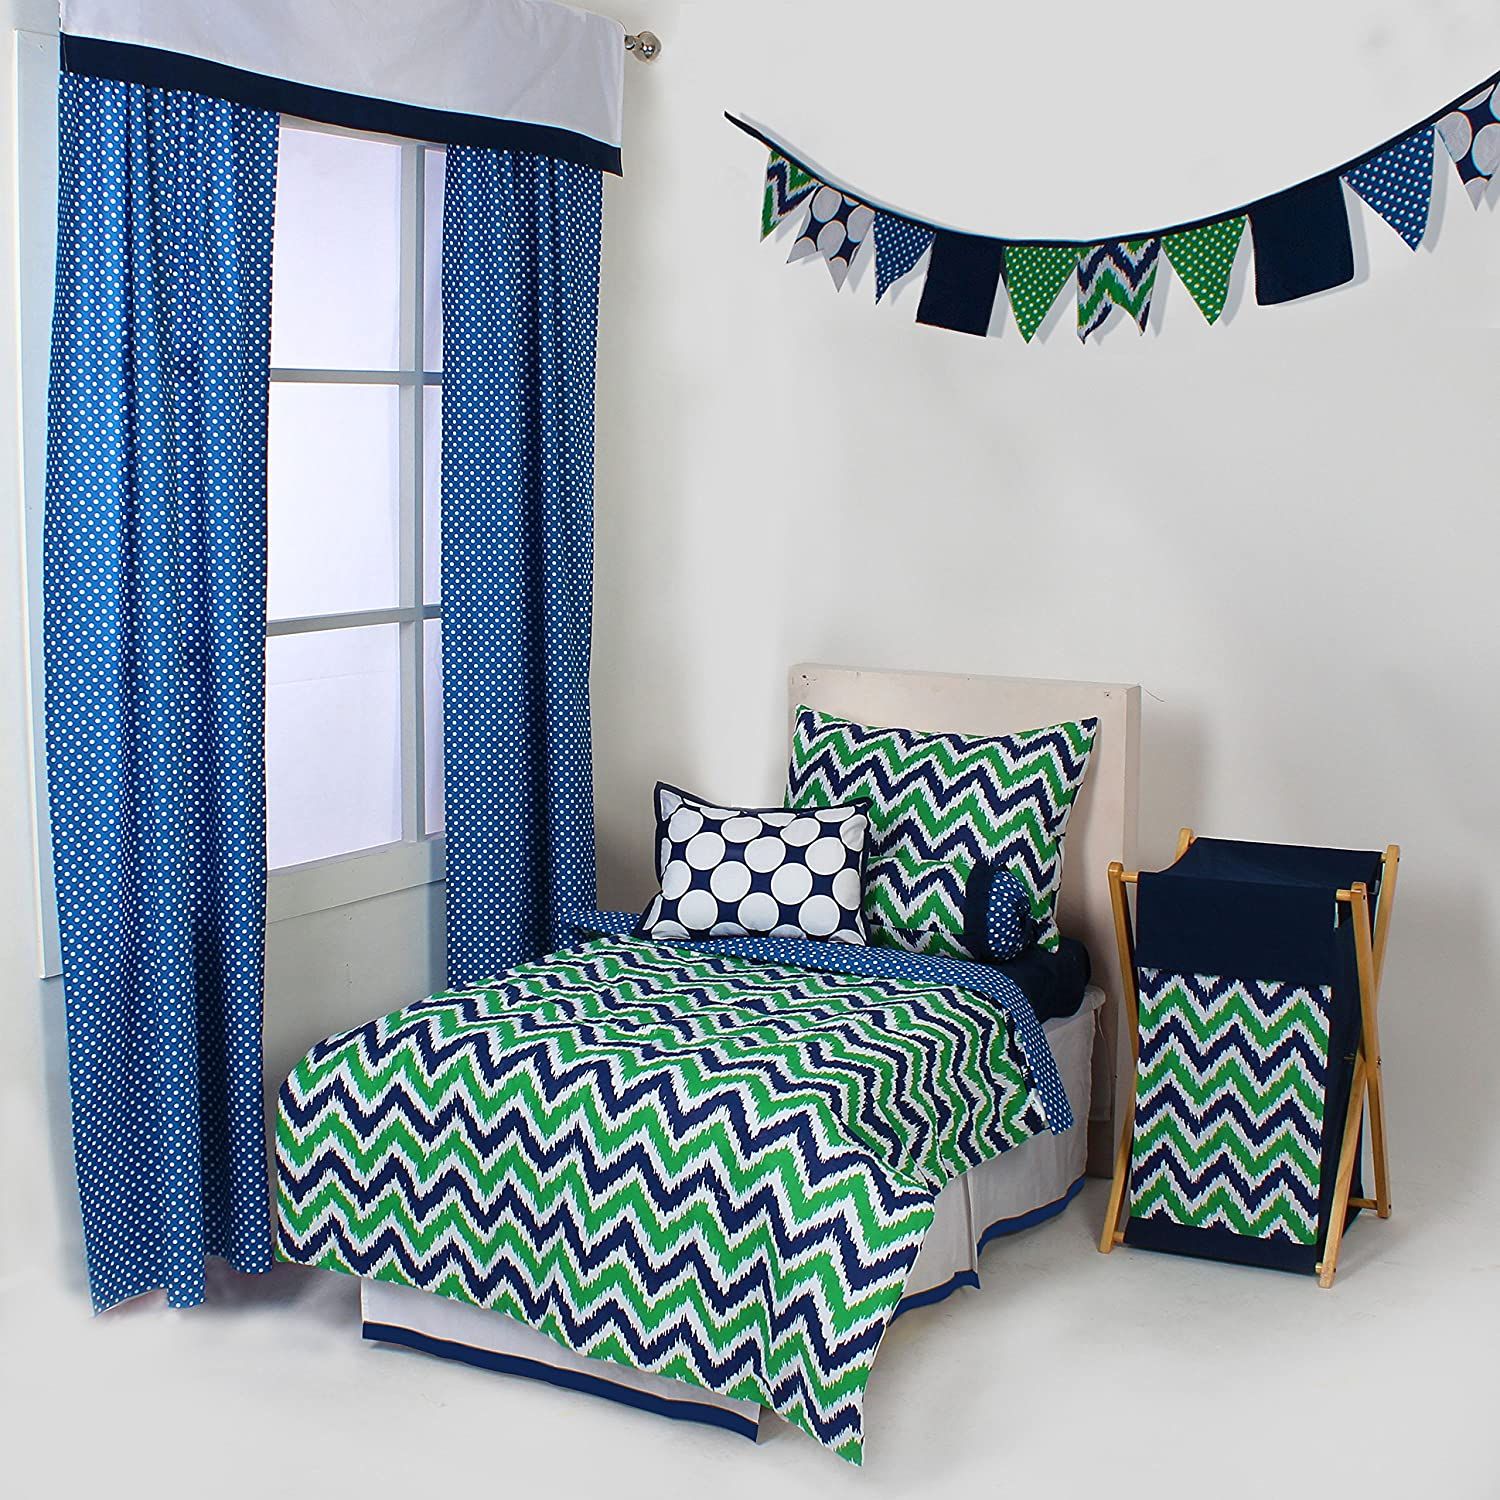 Bacati Mix and Match 4 Piece Toddler Bedding Set, Navy/Green by Bacati   B014A4D58U